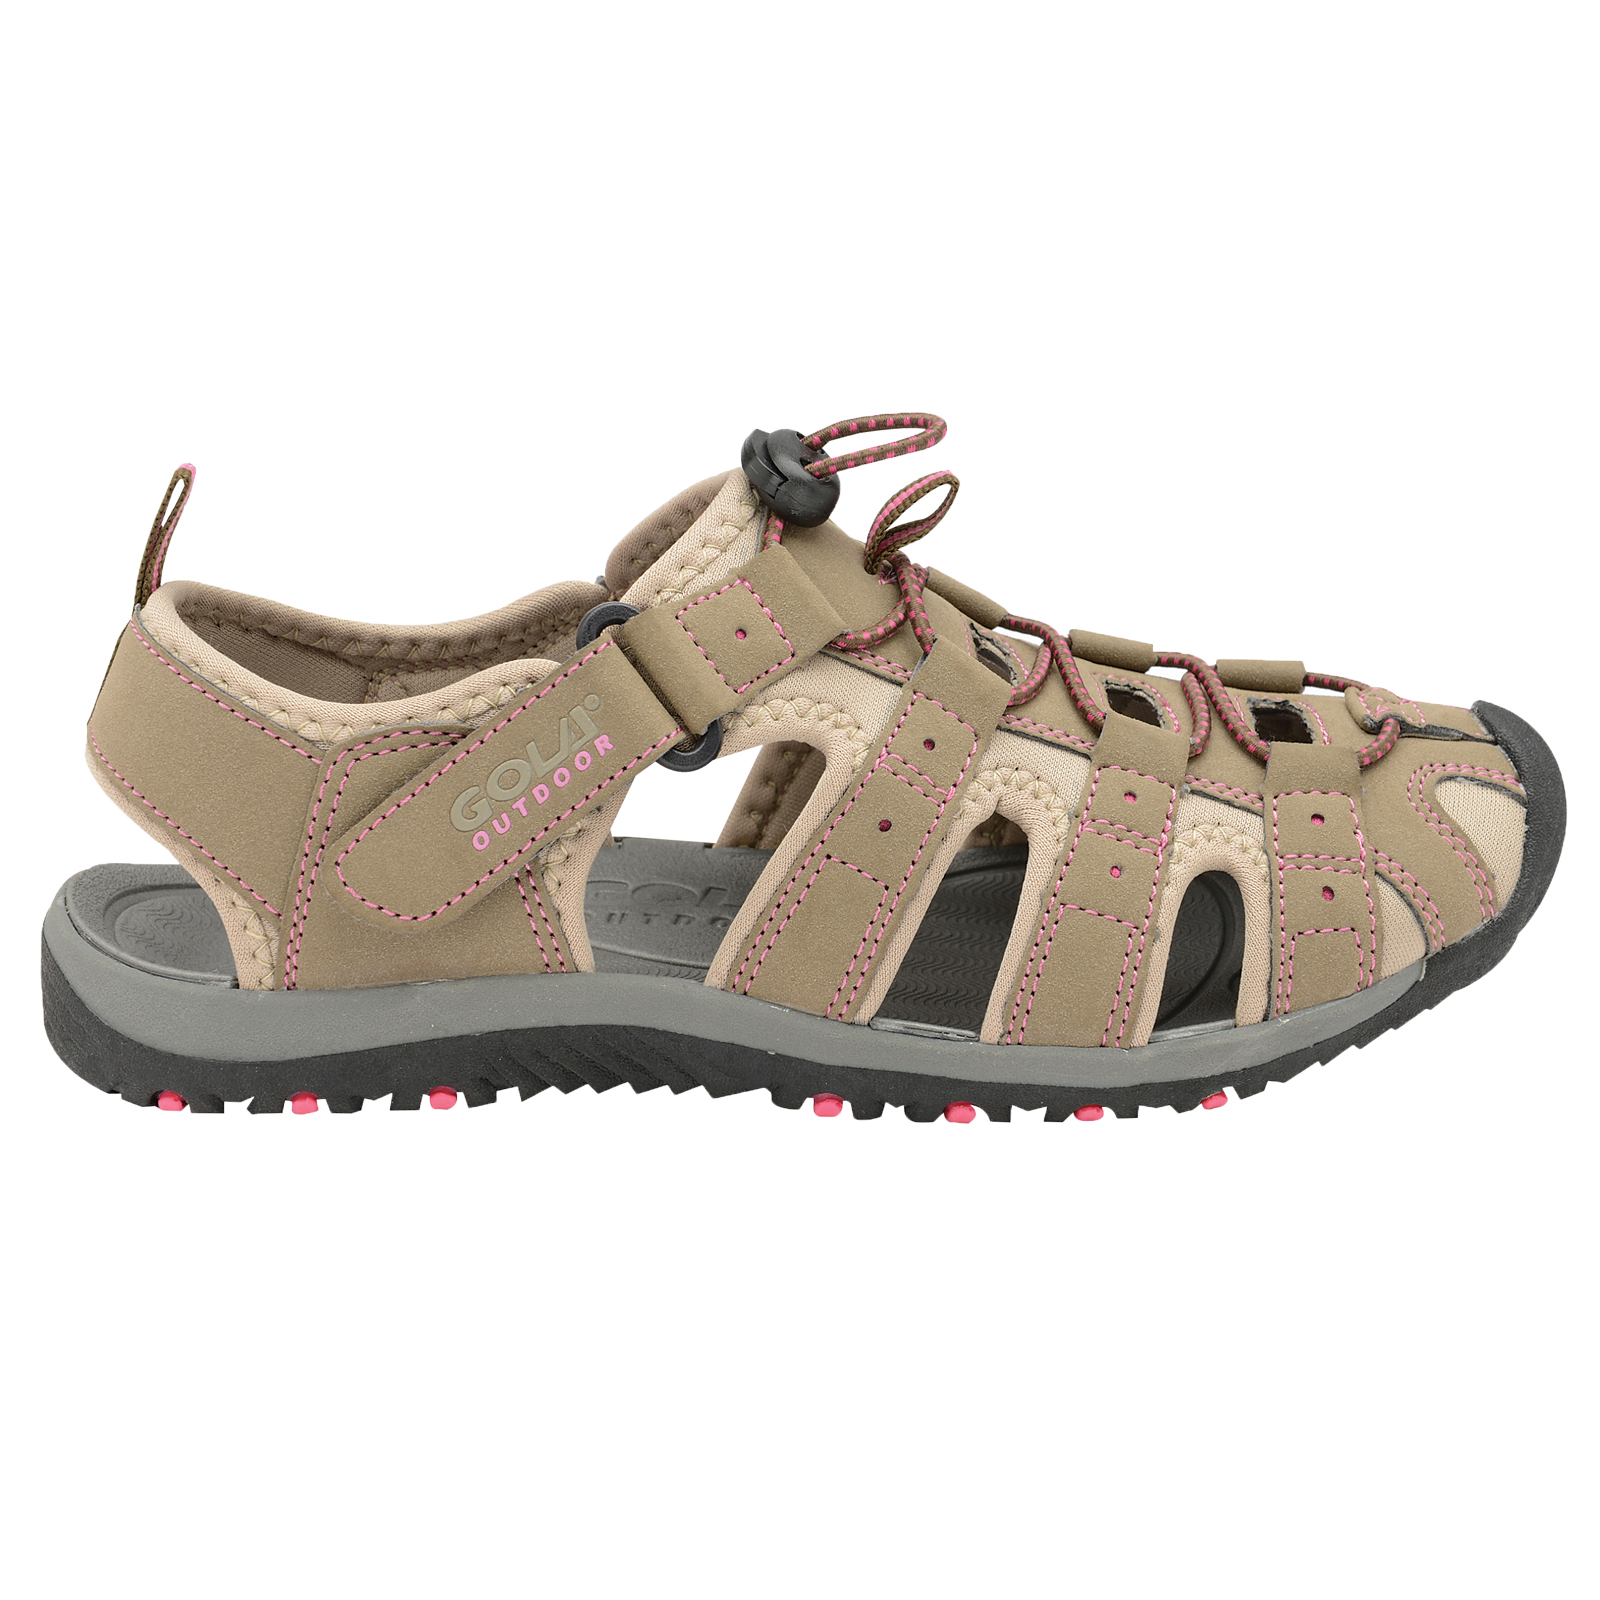 Womens Gola ALP648 Black and Pink UK 5